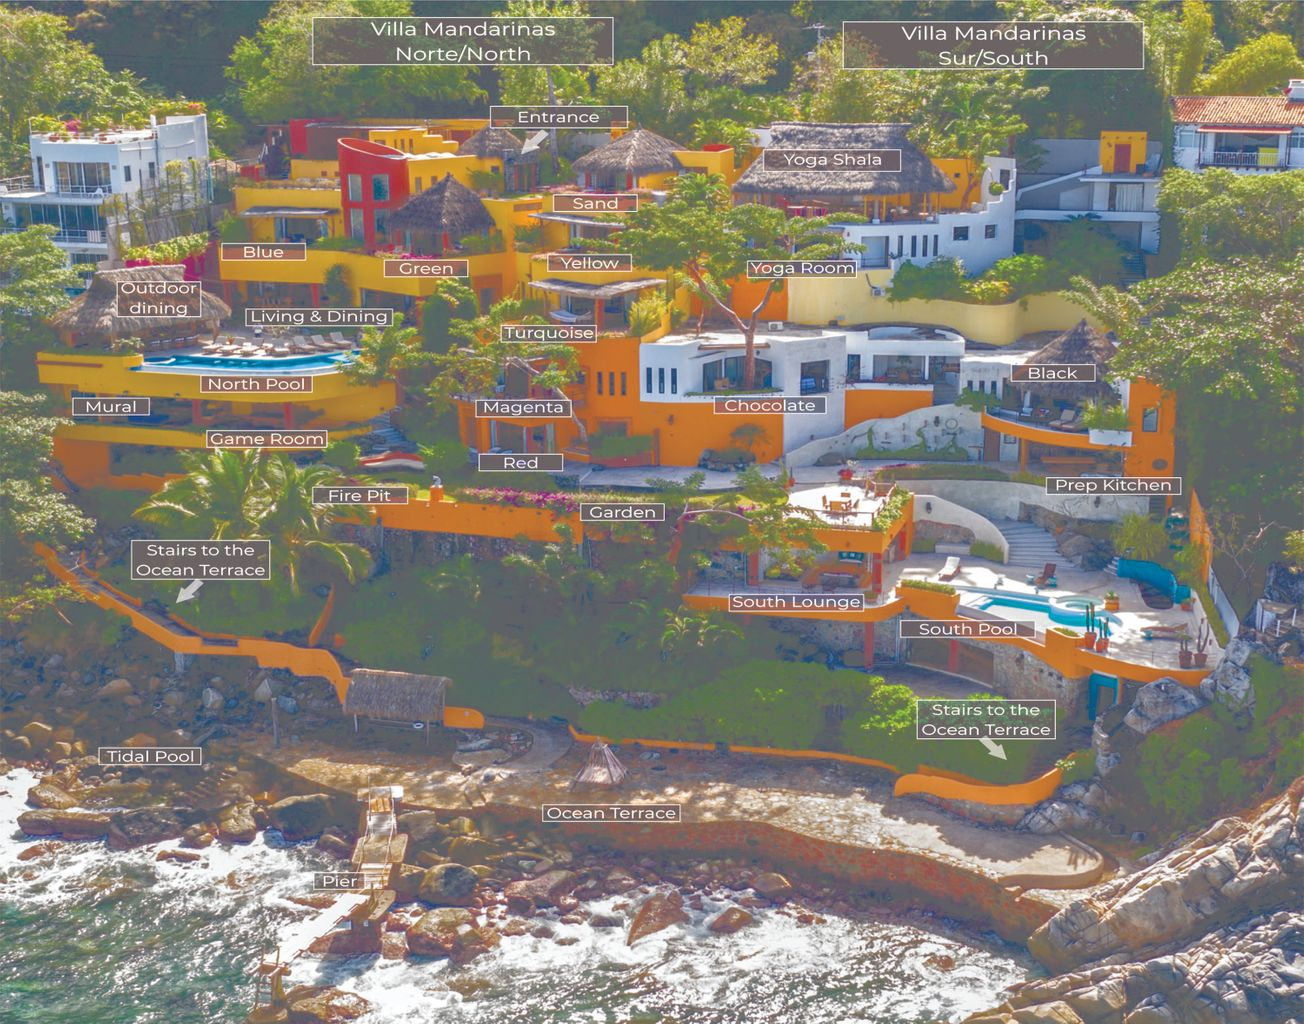 Aerial showing both villas for the entire estate.